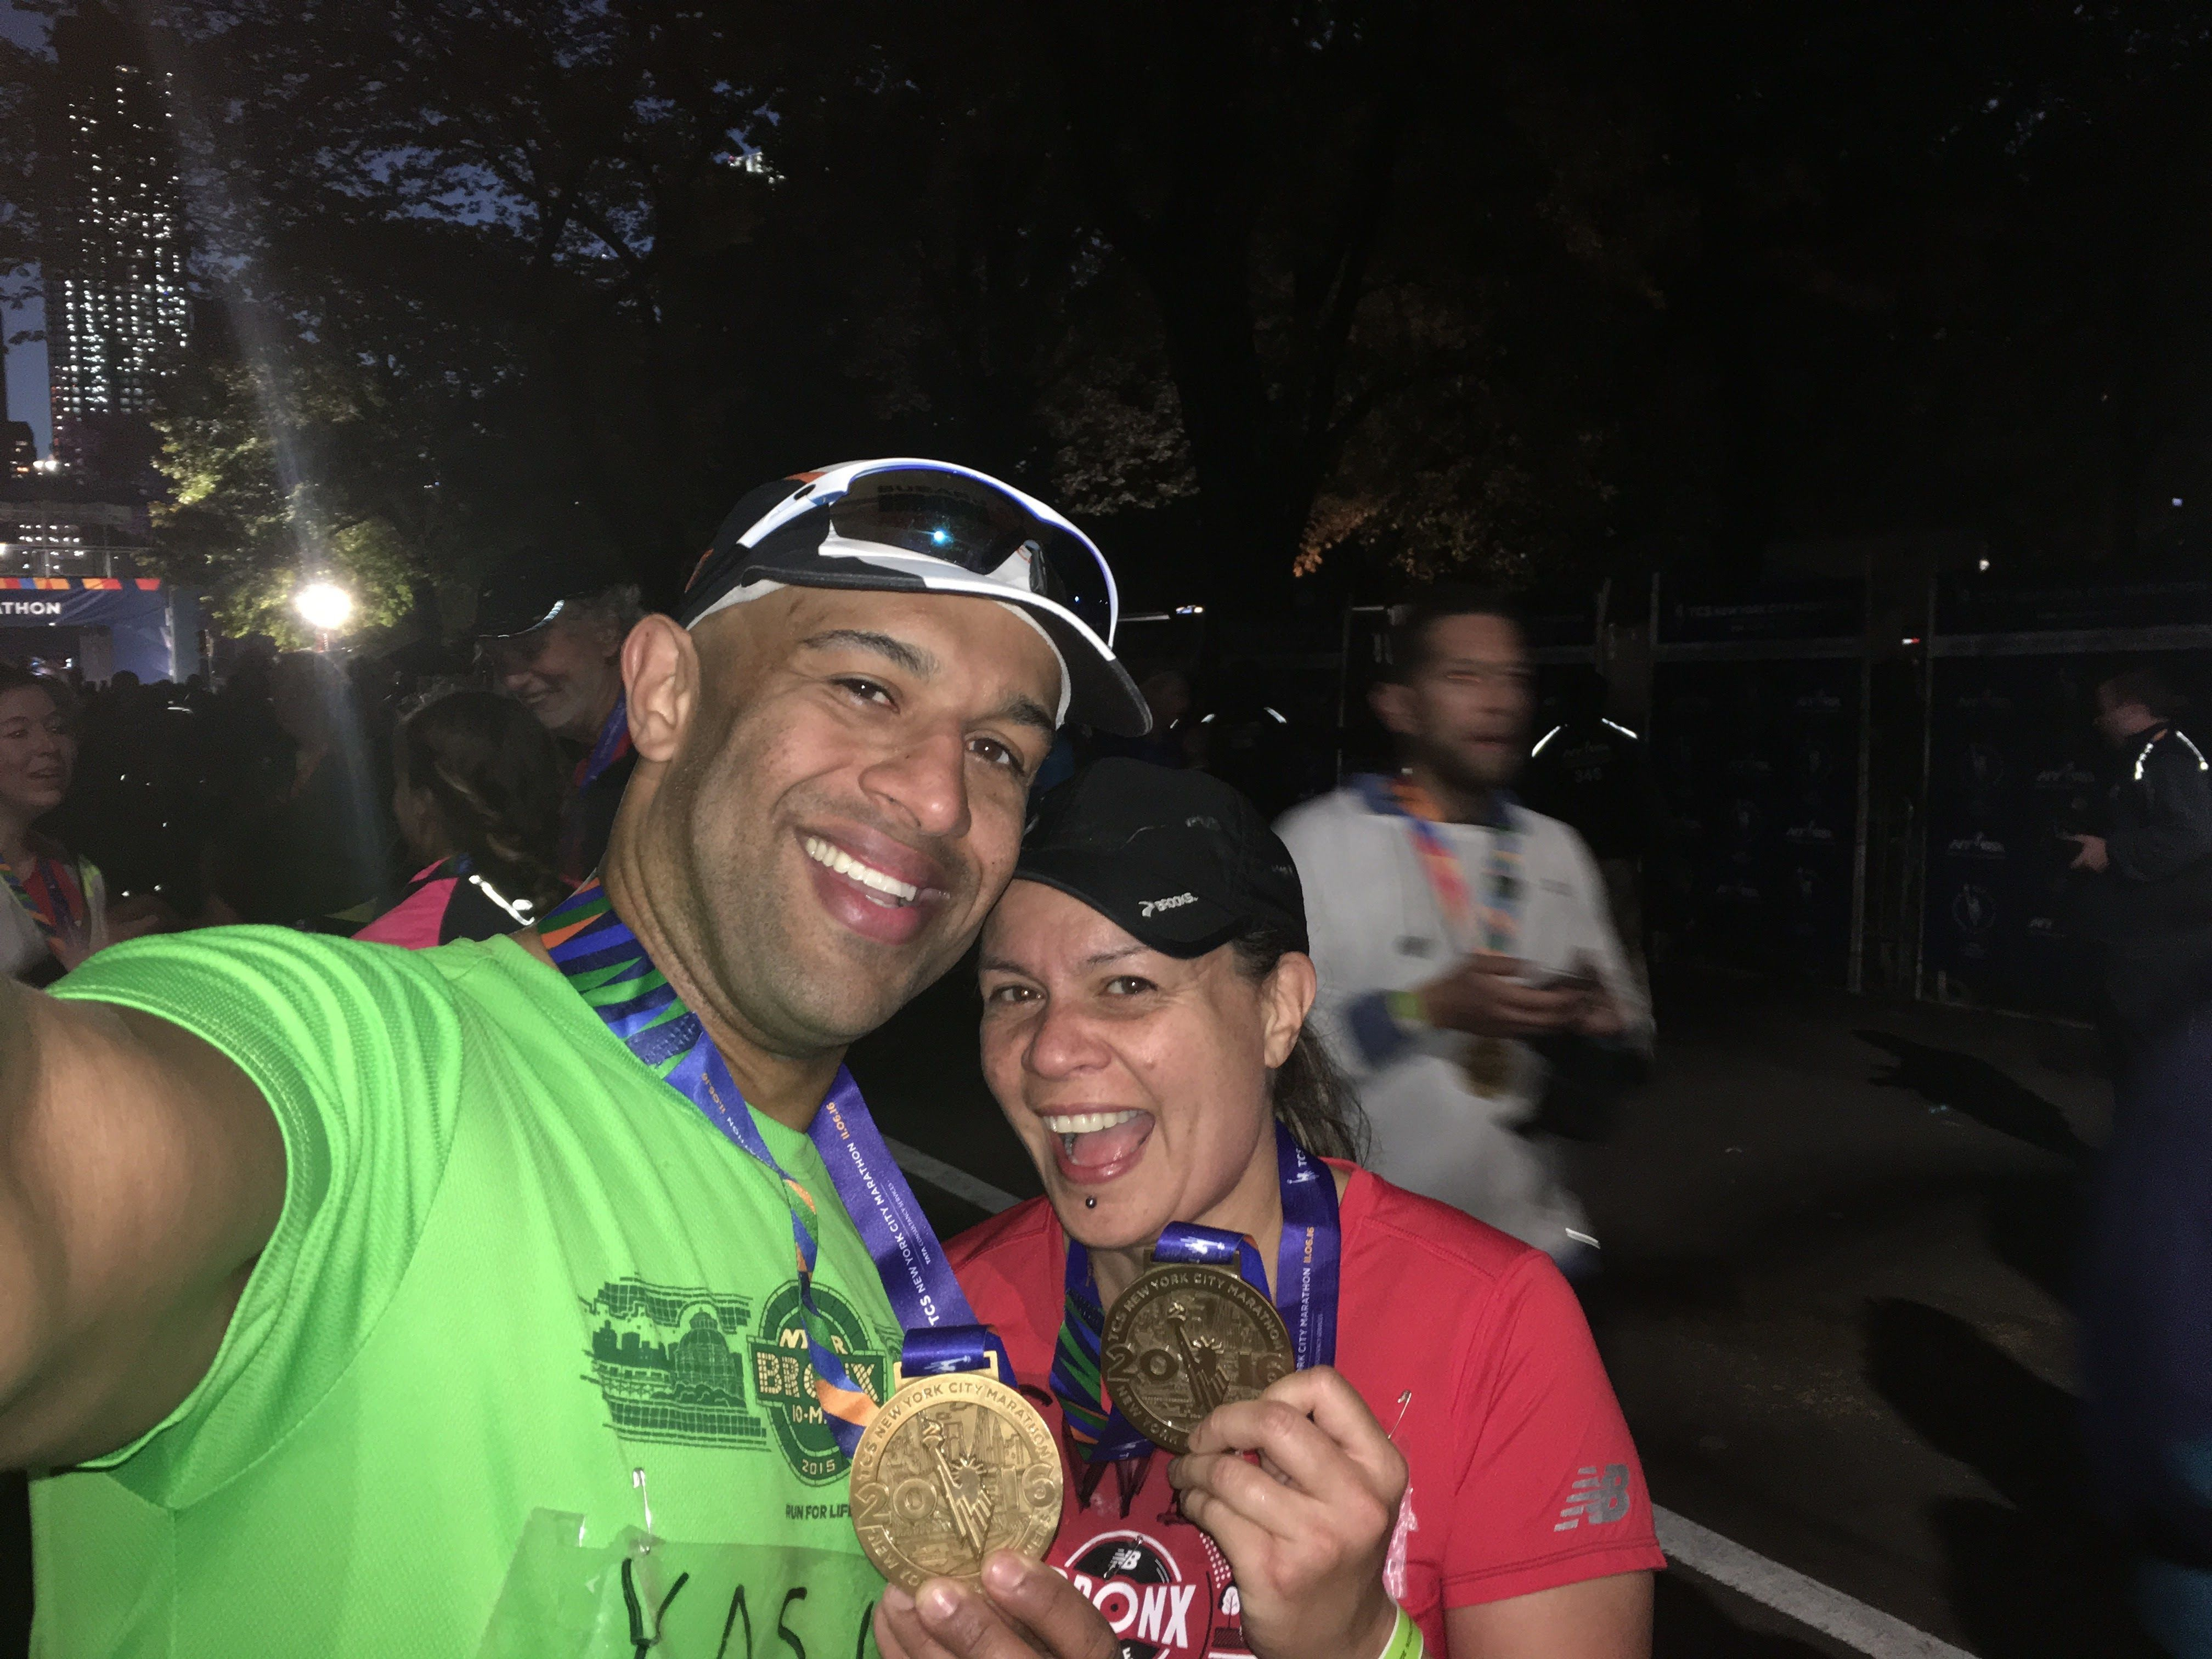 This Man is Doing 50 Marathons in 50 States in One Year